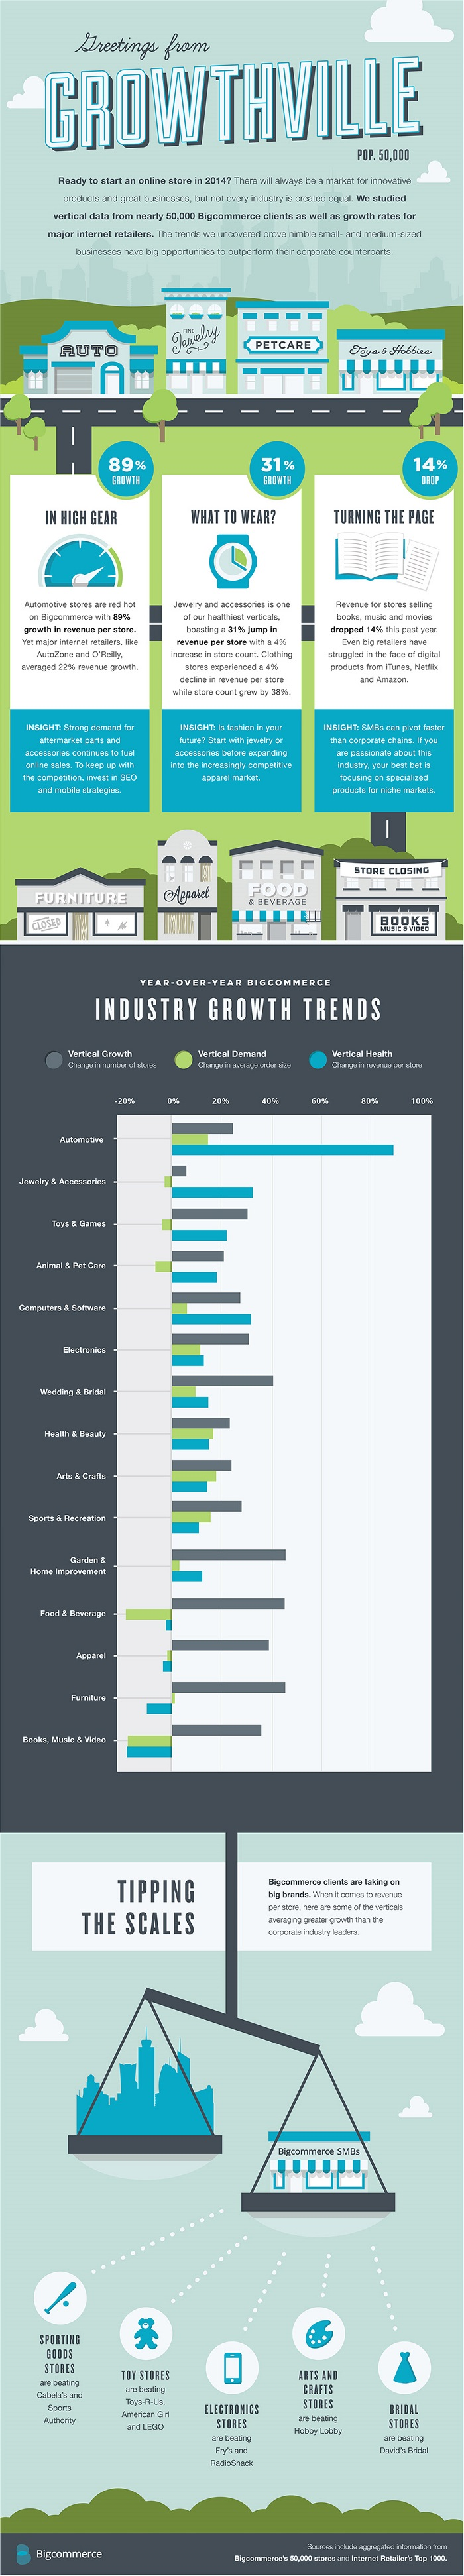 The most potential e-commerce niches for 2014